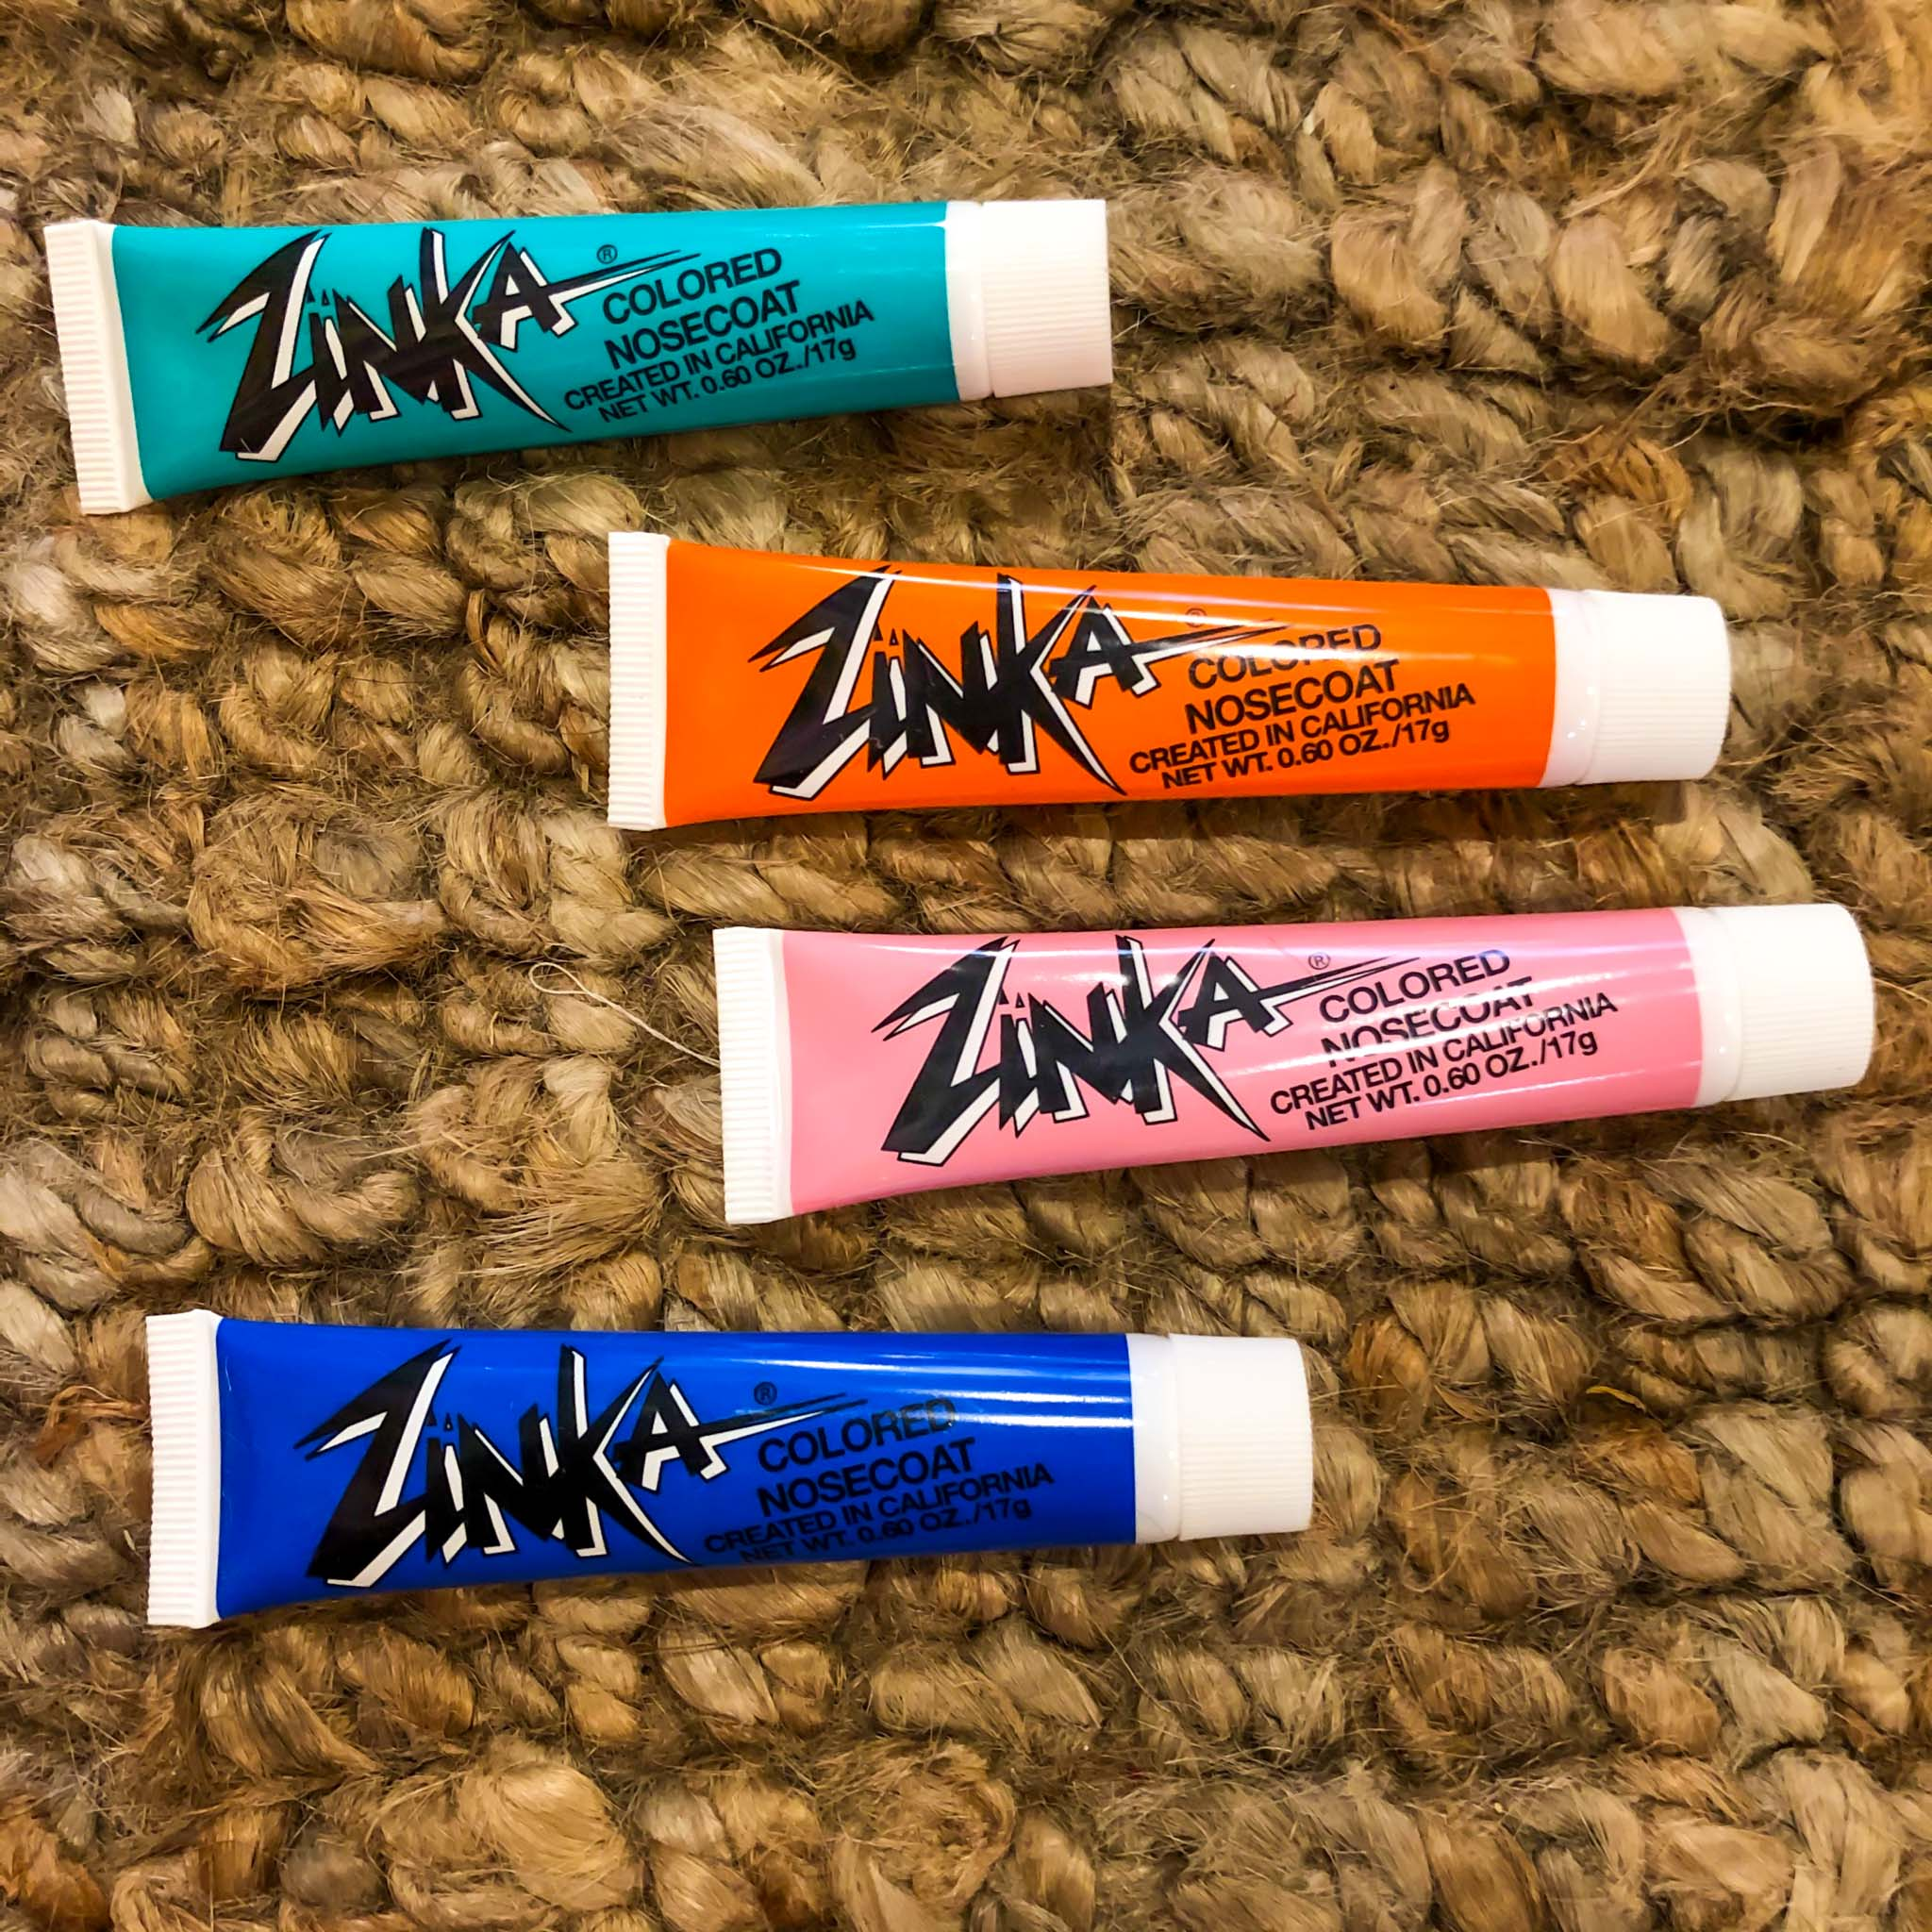 ZINKA NOSECOAT SUNSCREEN